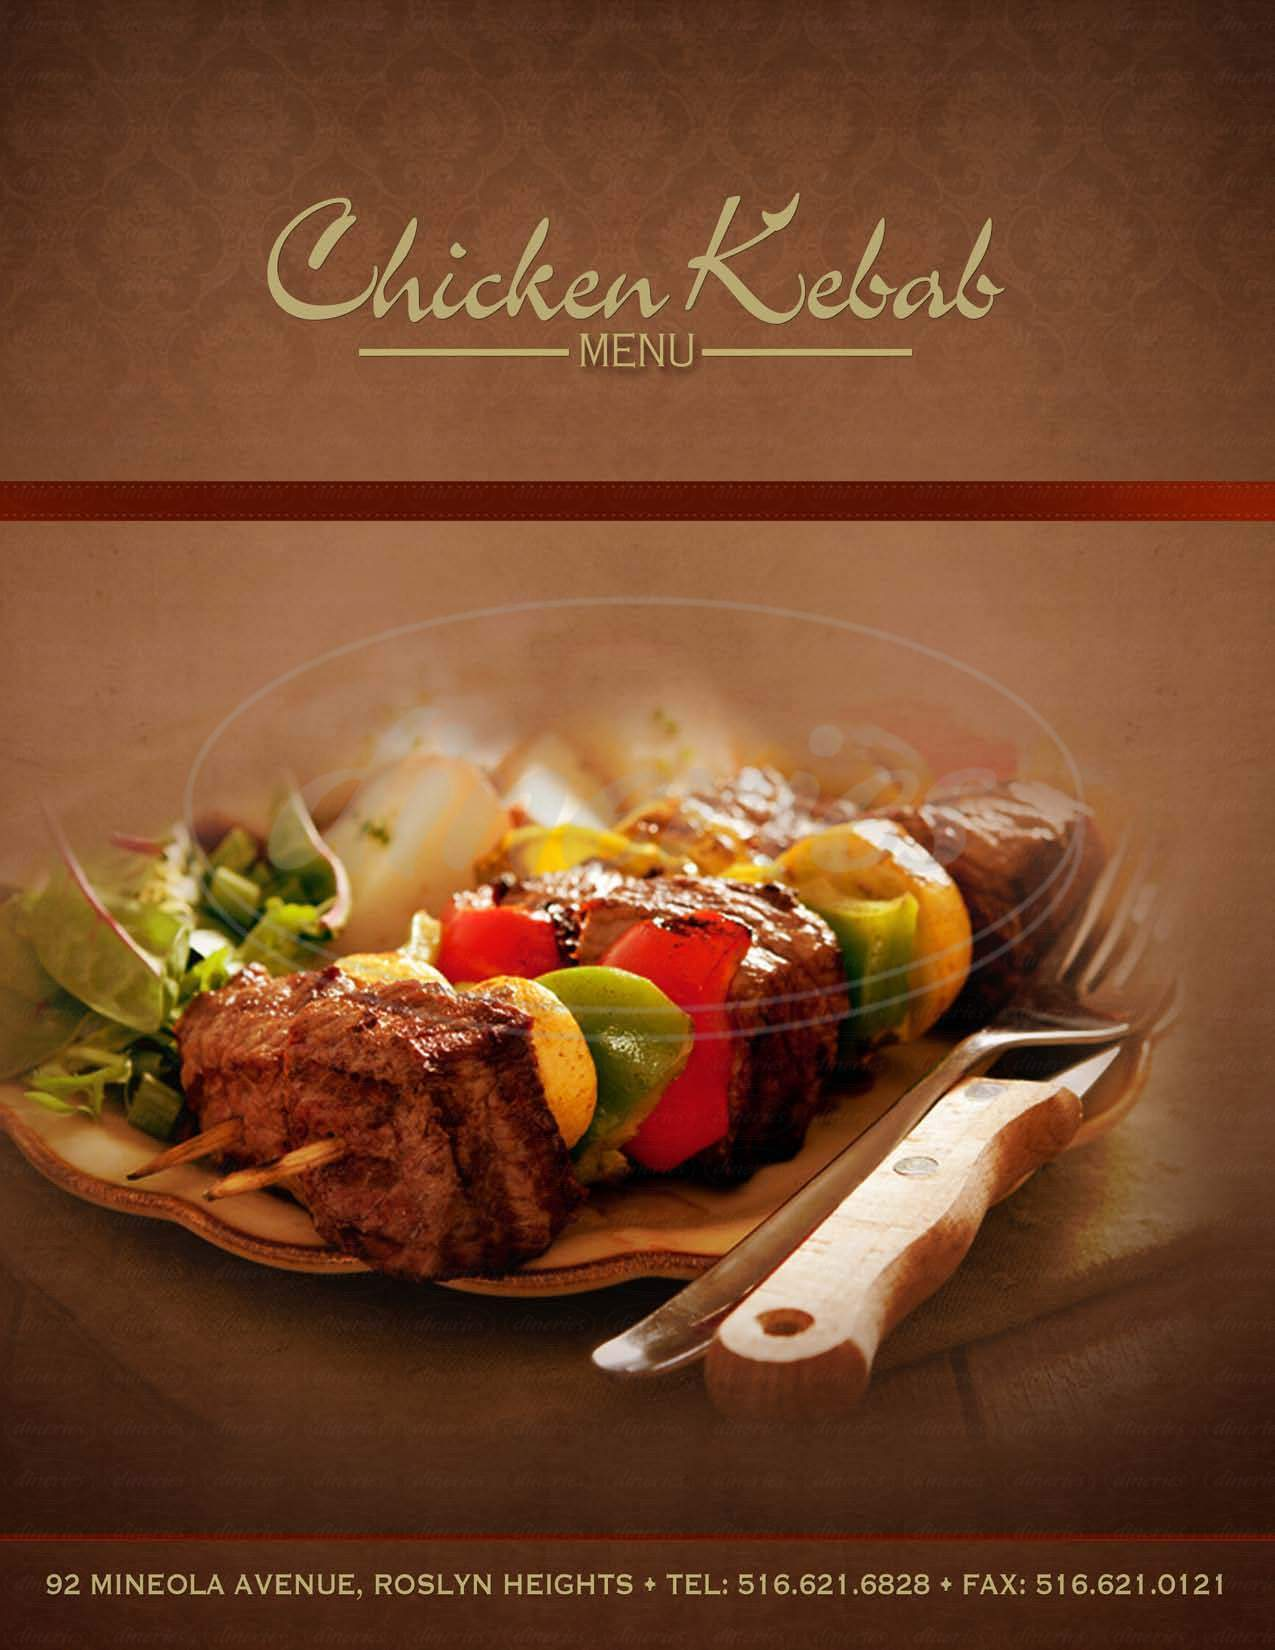 menu for Chicken Kebab